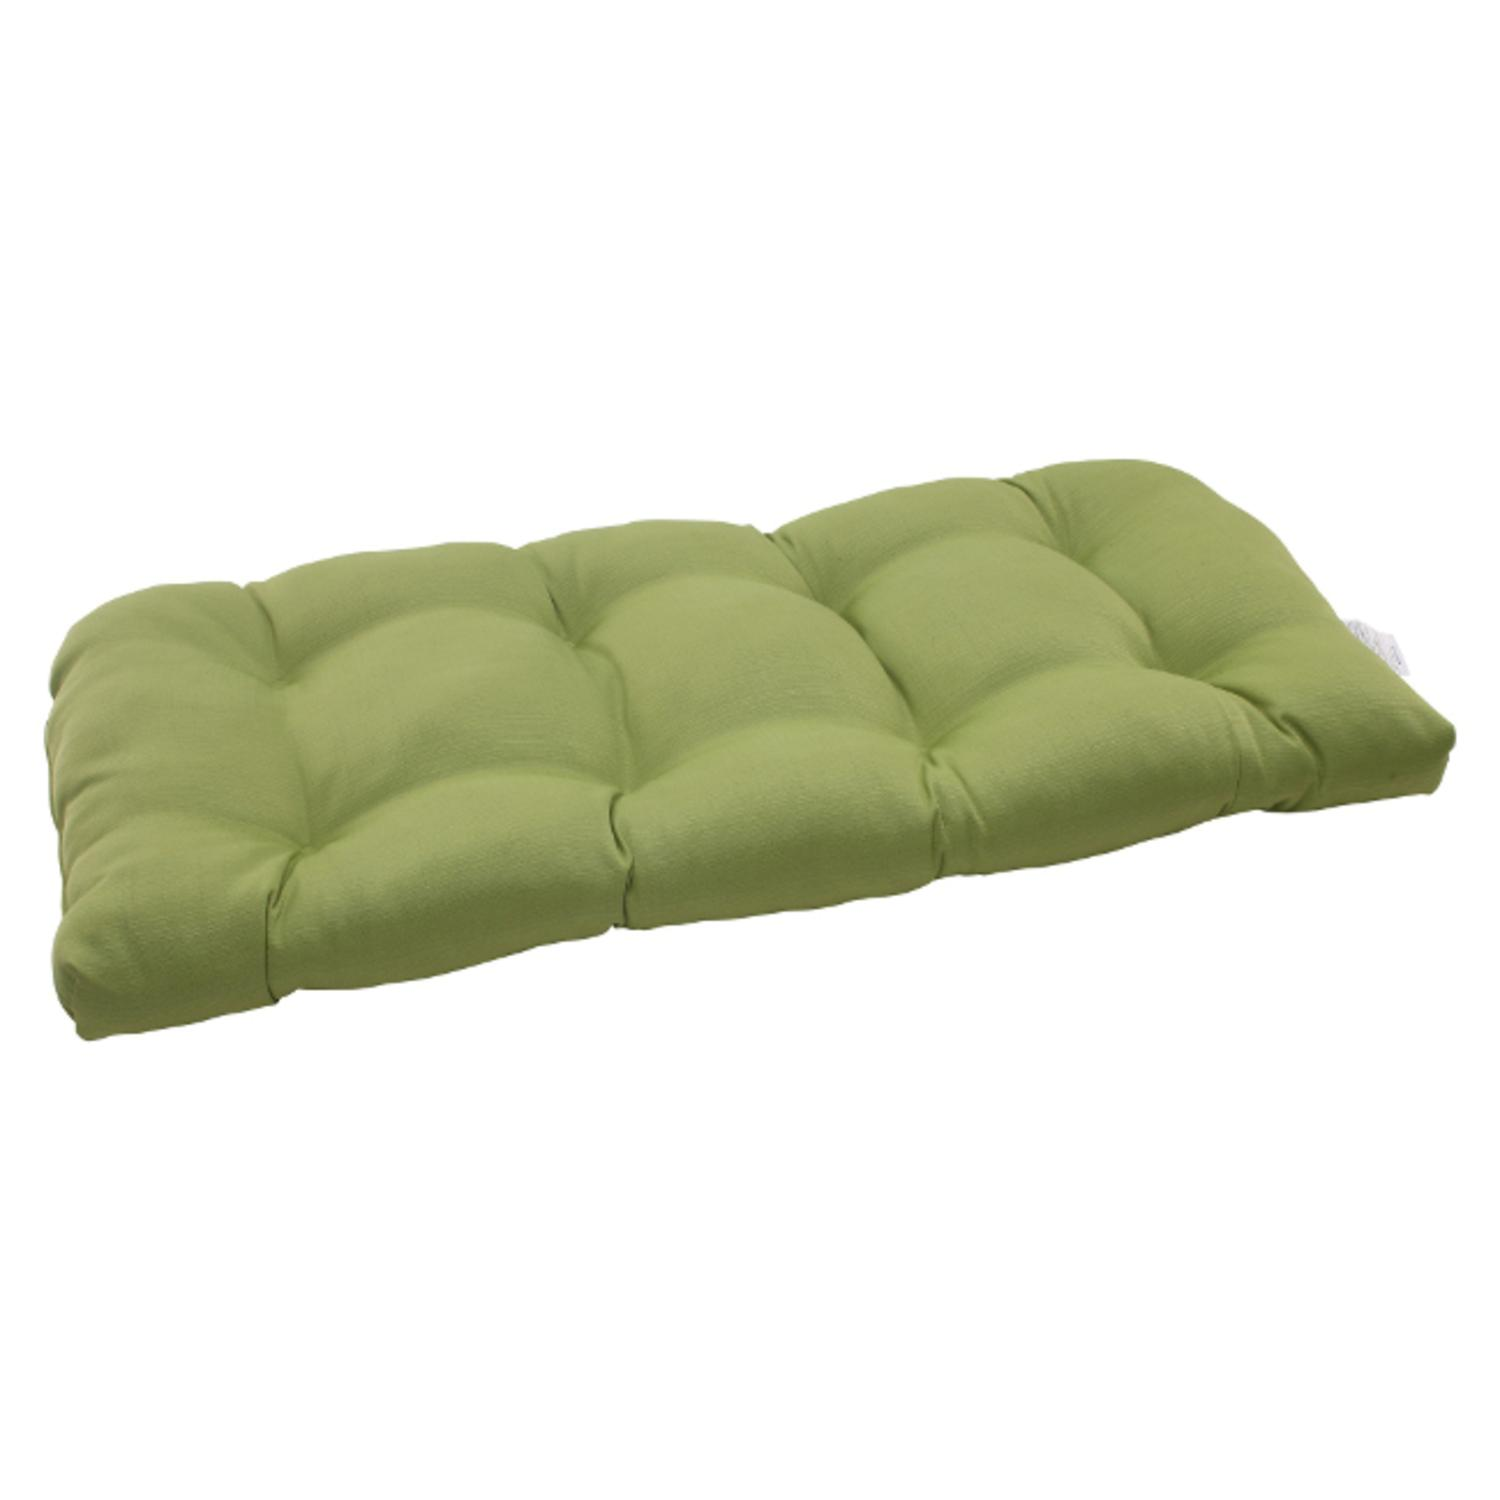 """44"""" Solid Olive Green Outdoor Patio Wicker Tufted Loveseat Cushion"""